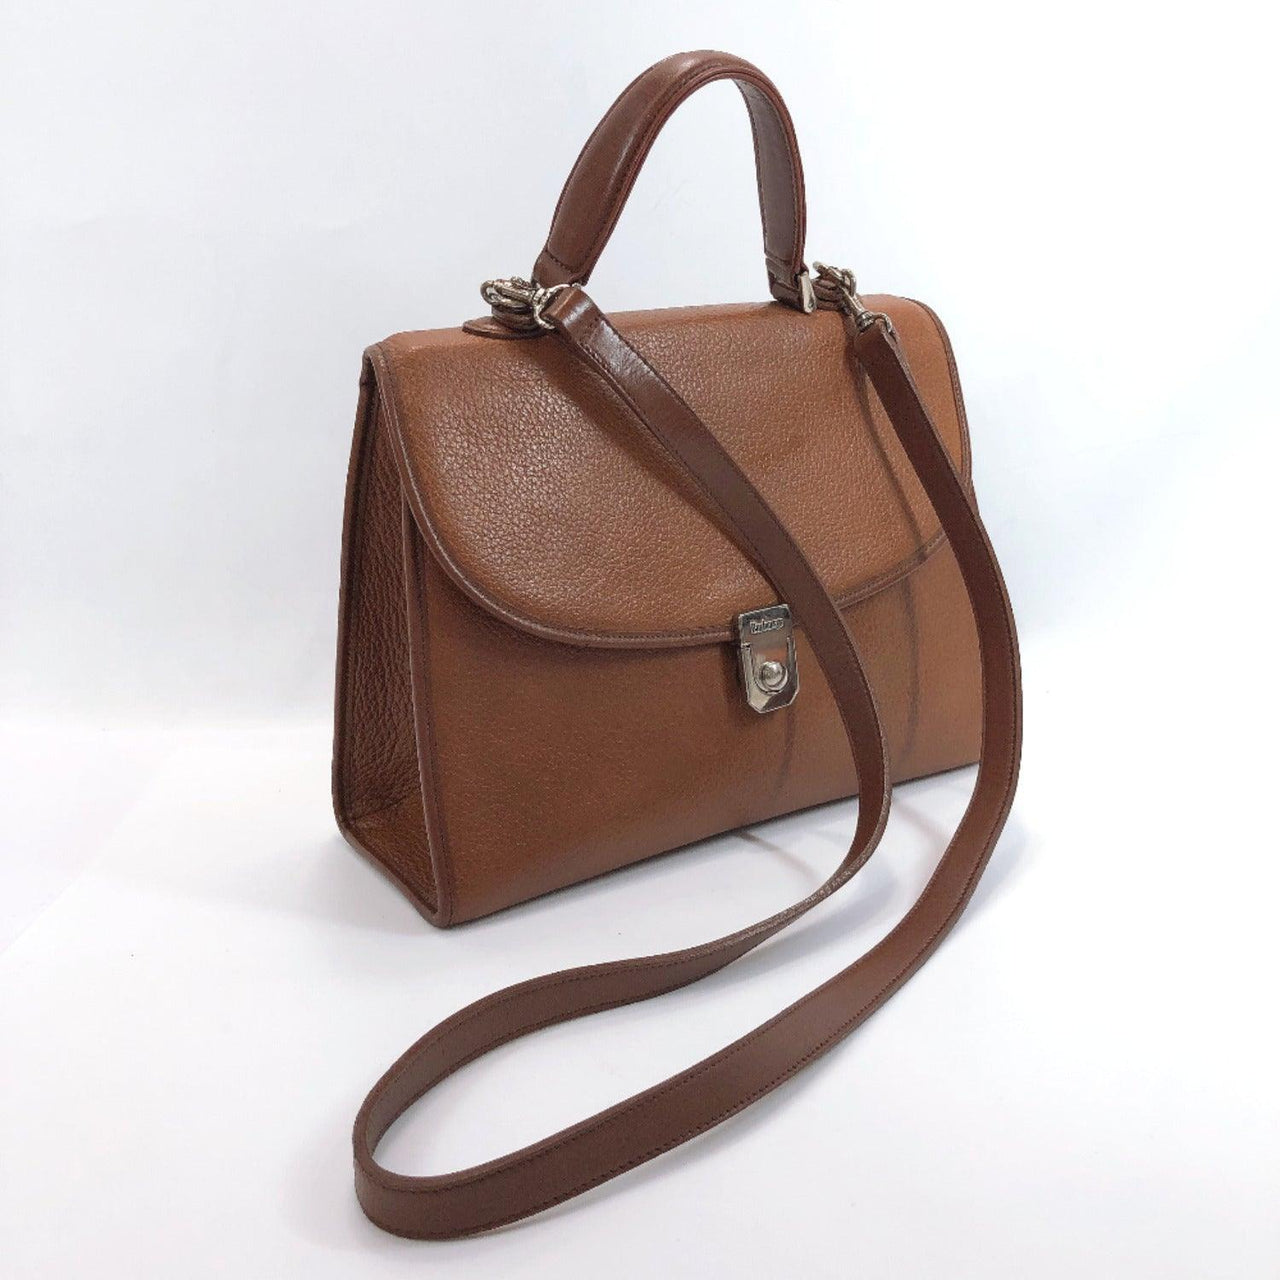 BURBERRY Shoulder Bag 2way leather Brown Women Used